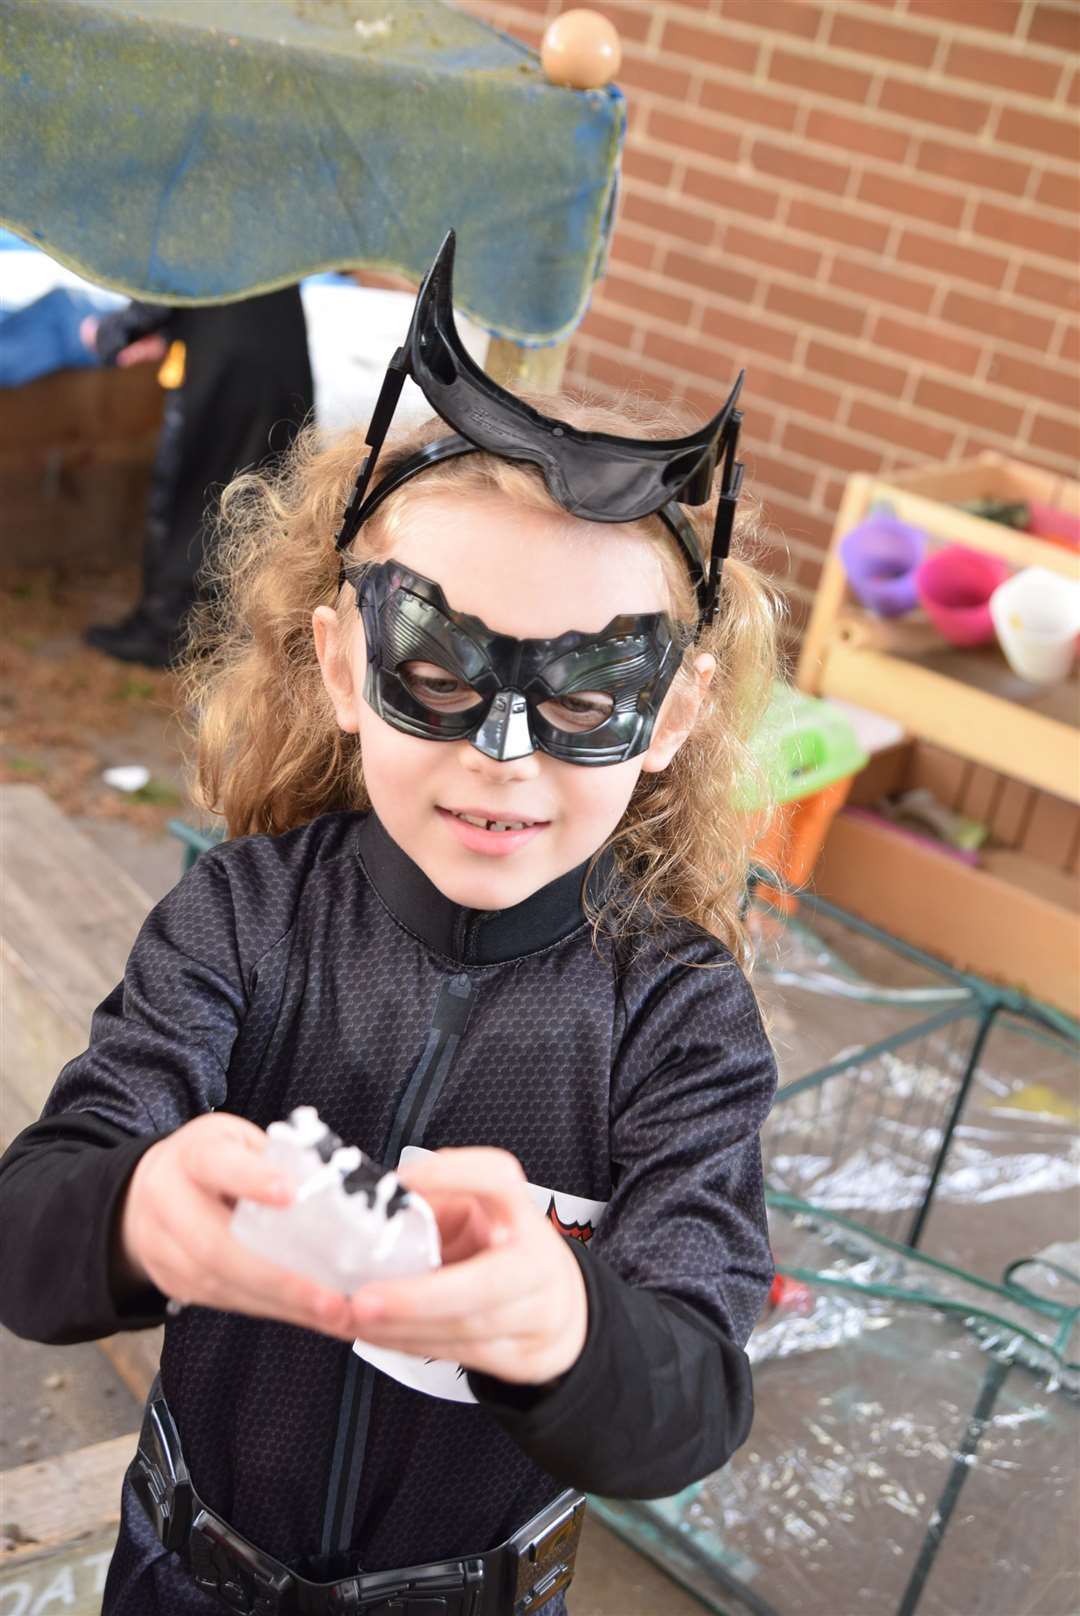 Superhero training day at Tydd St Mary Primary School (10663173)